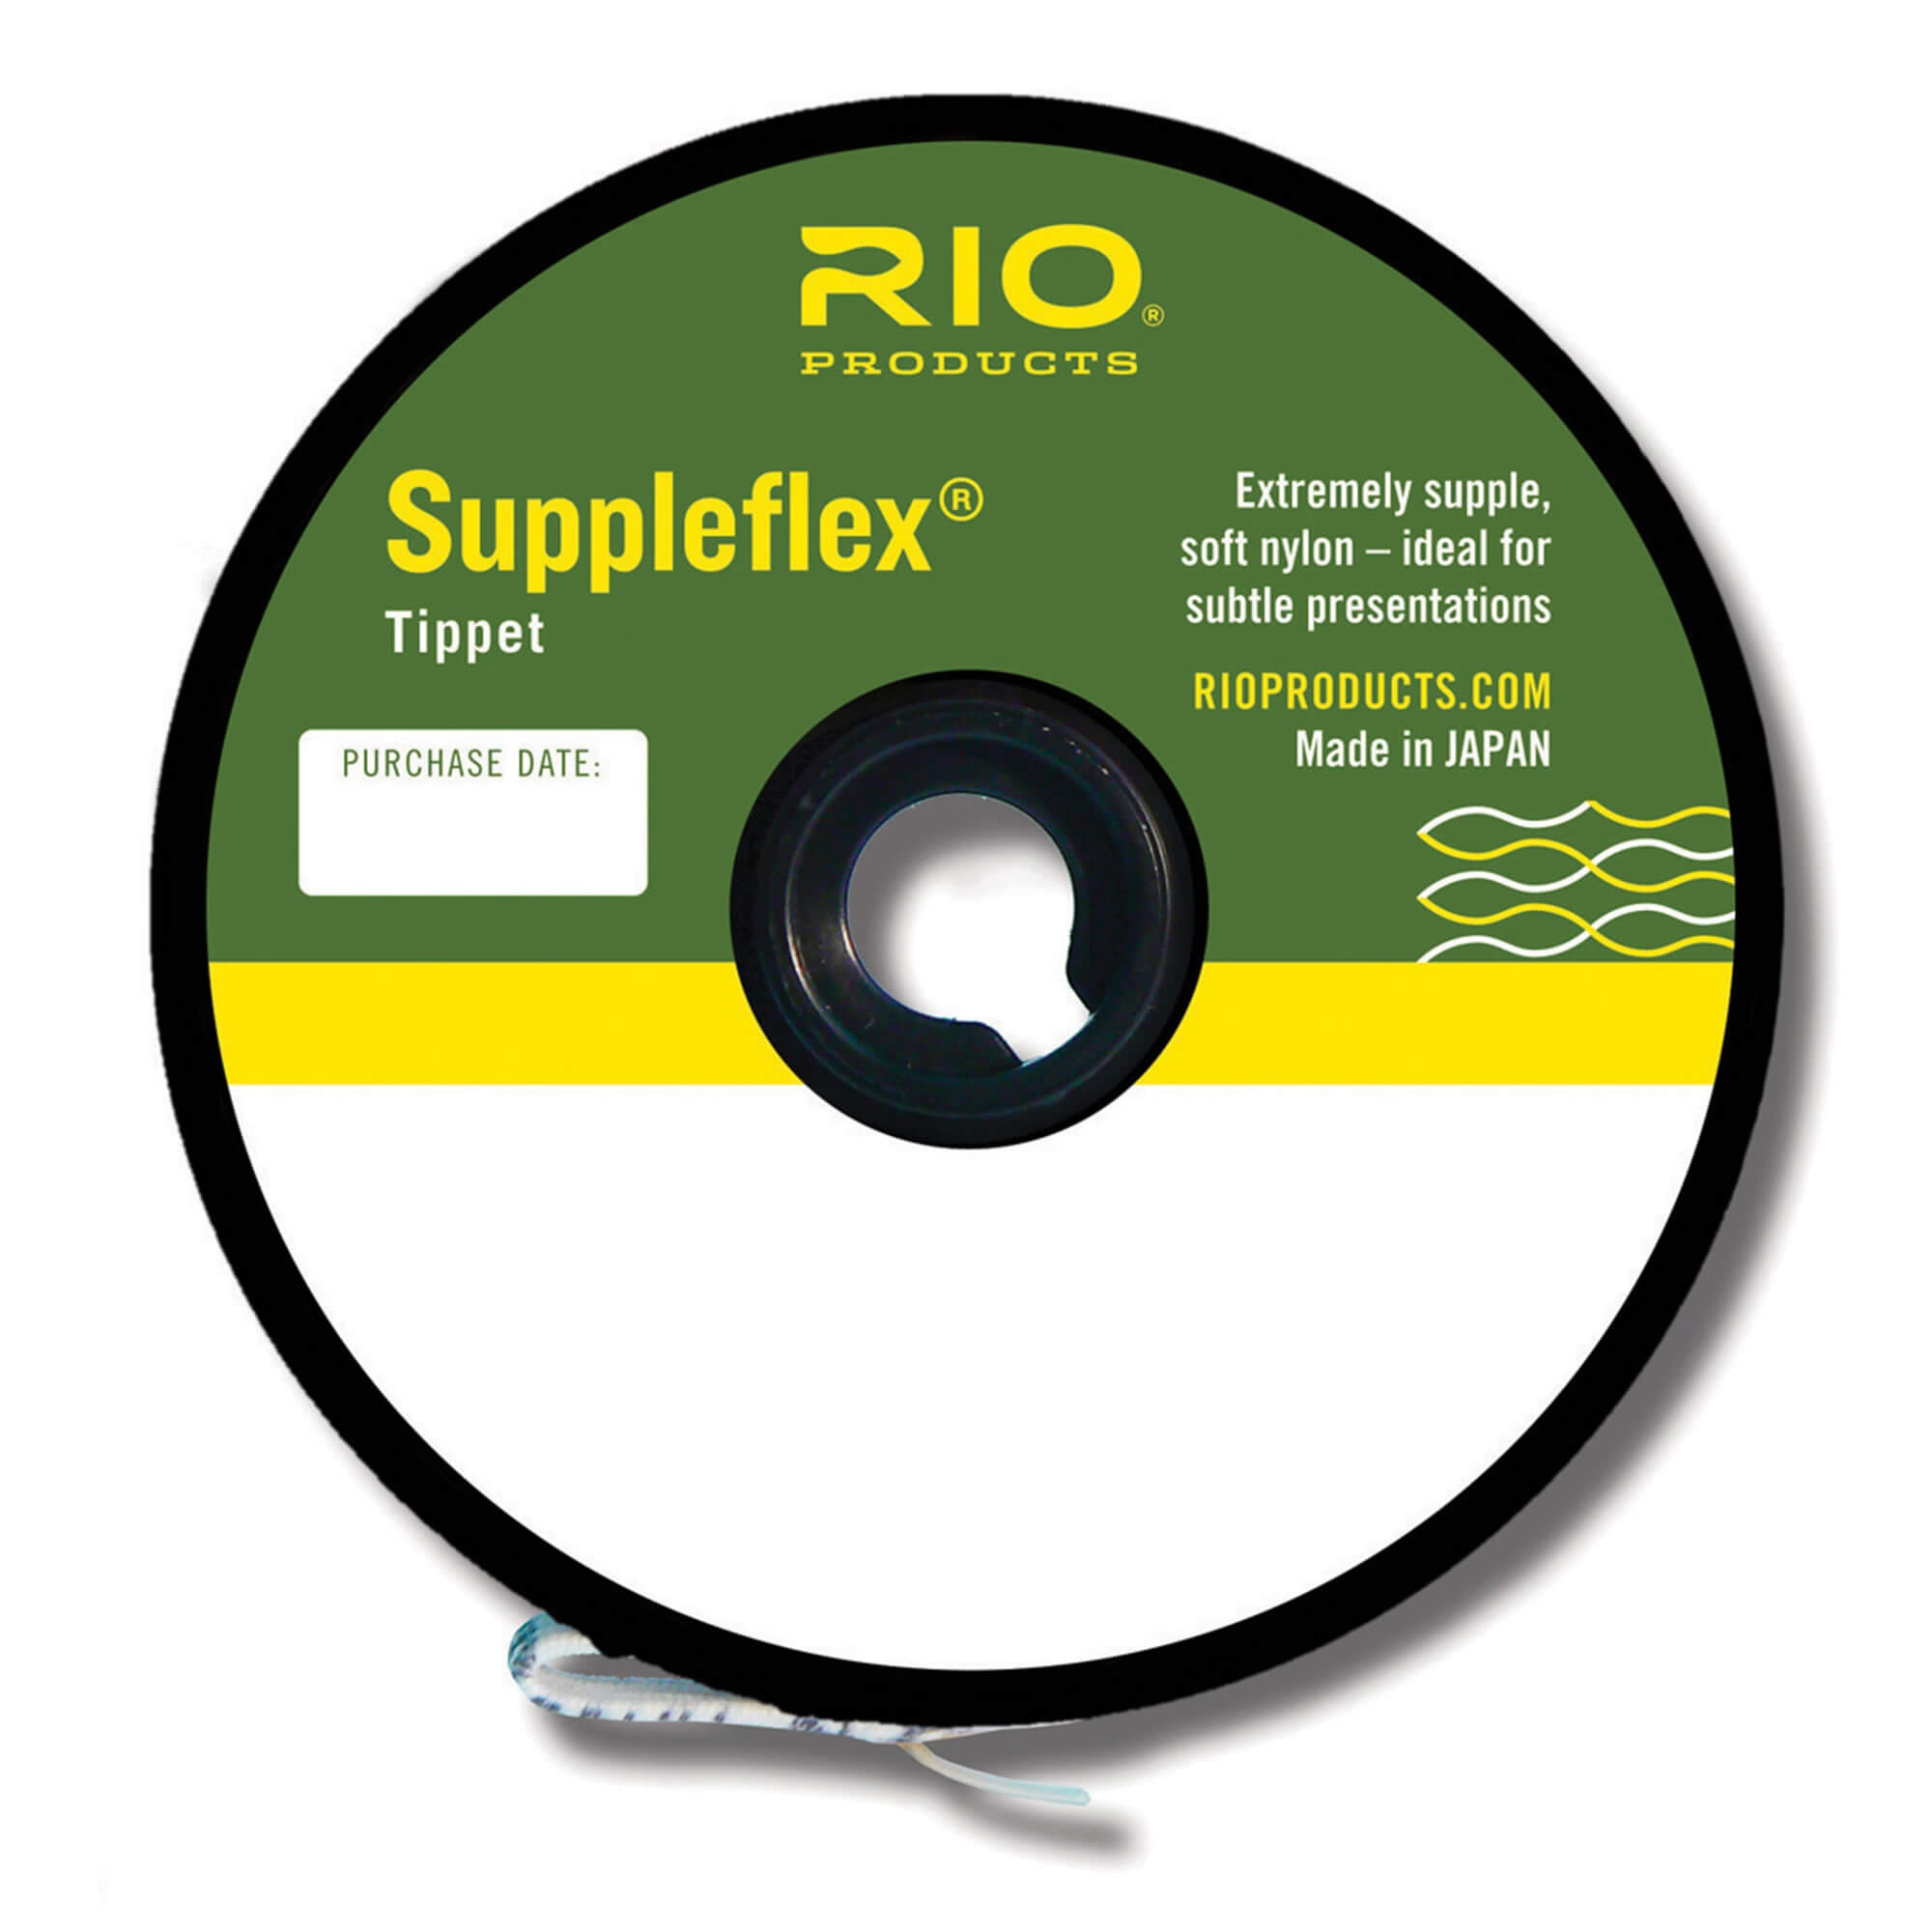 Freshwater Tippet Suppleflex